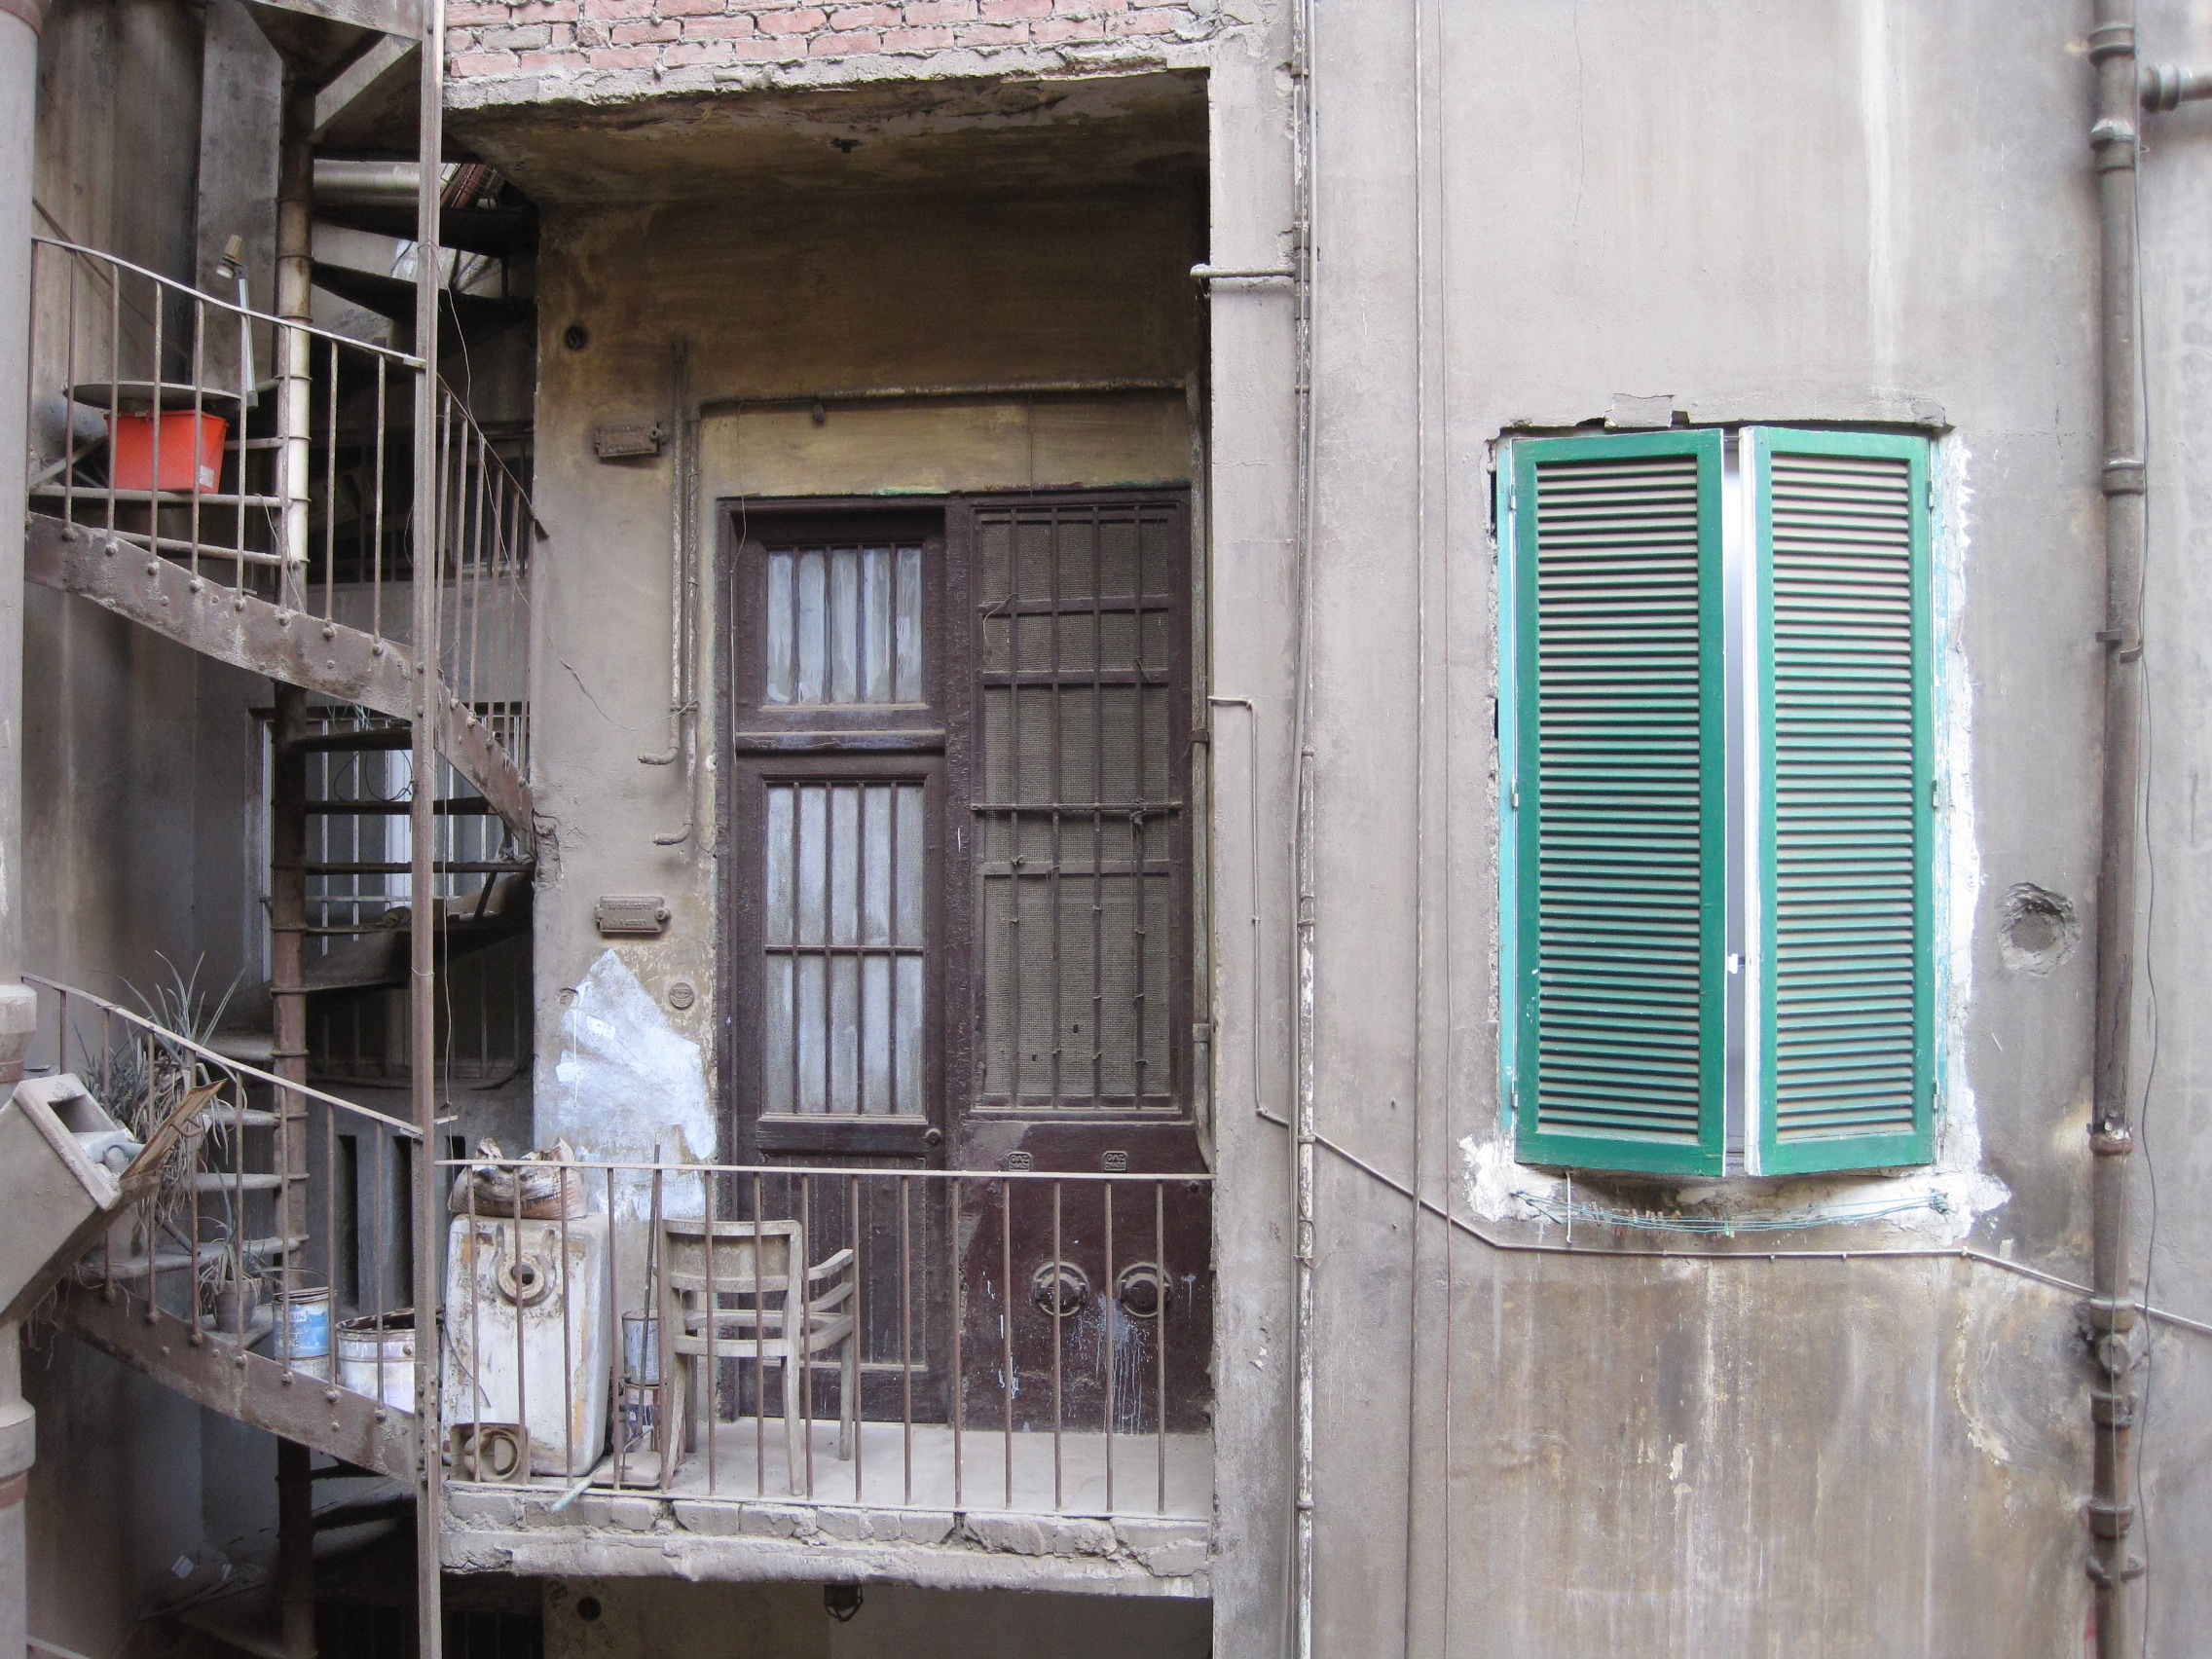 Balcony in an alley in Downtown Cairo.